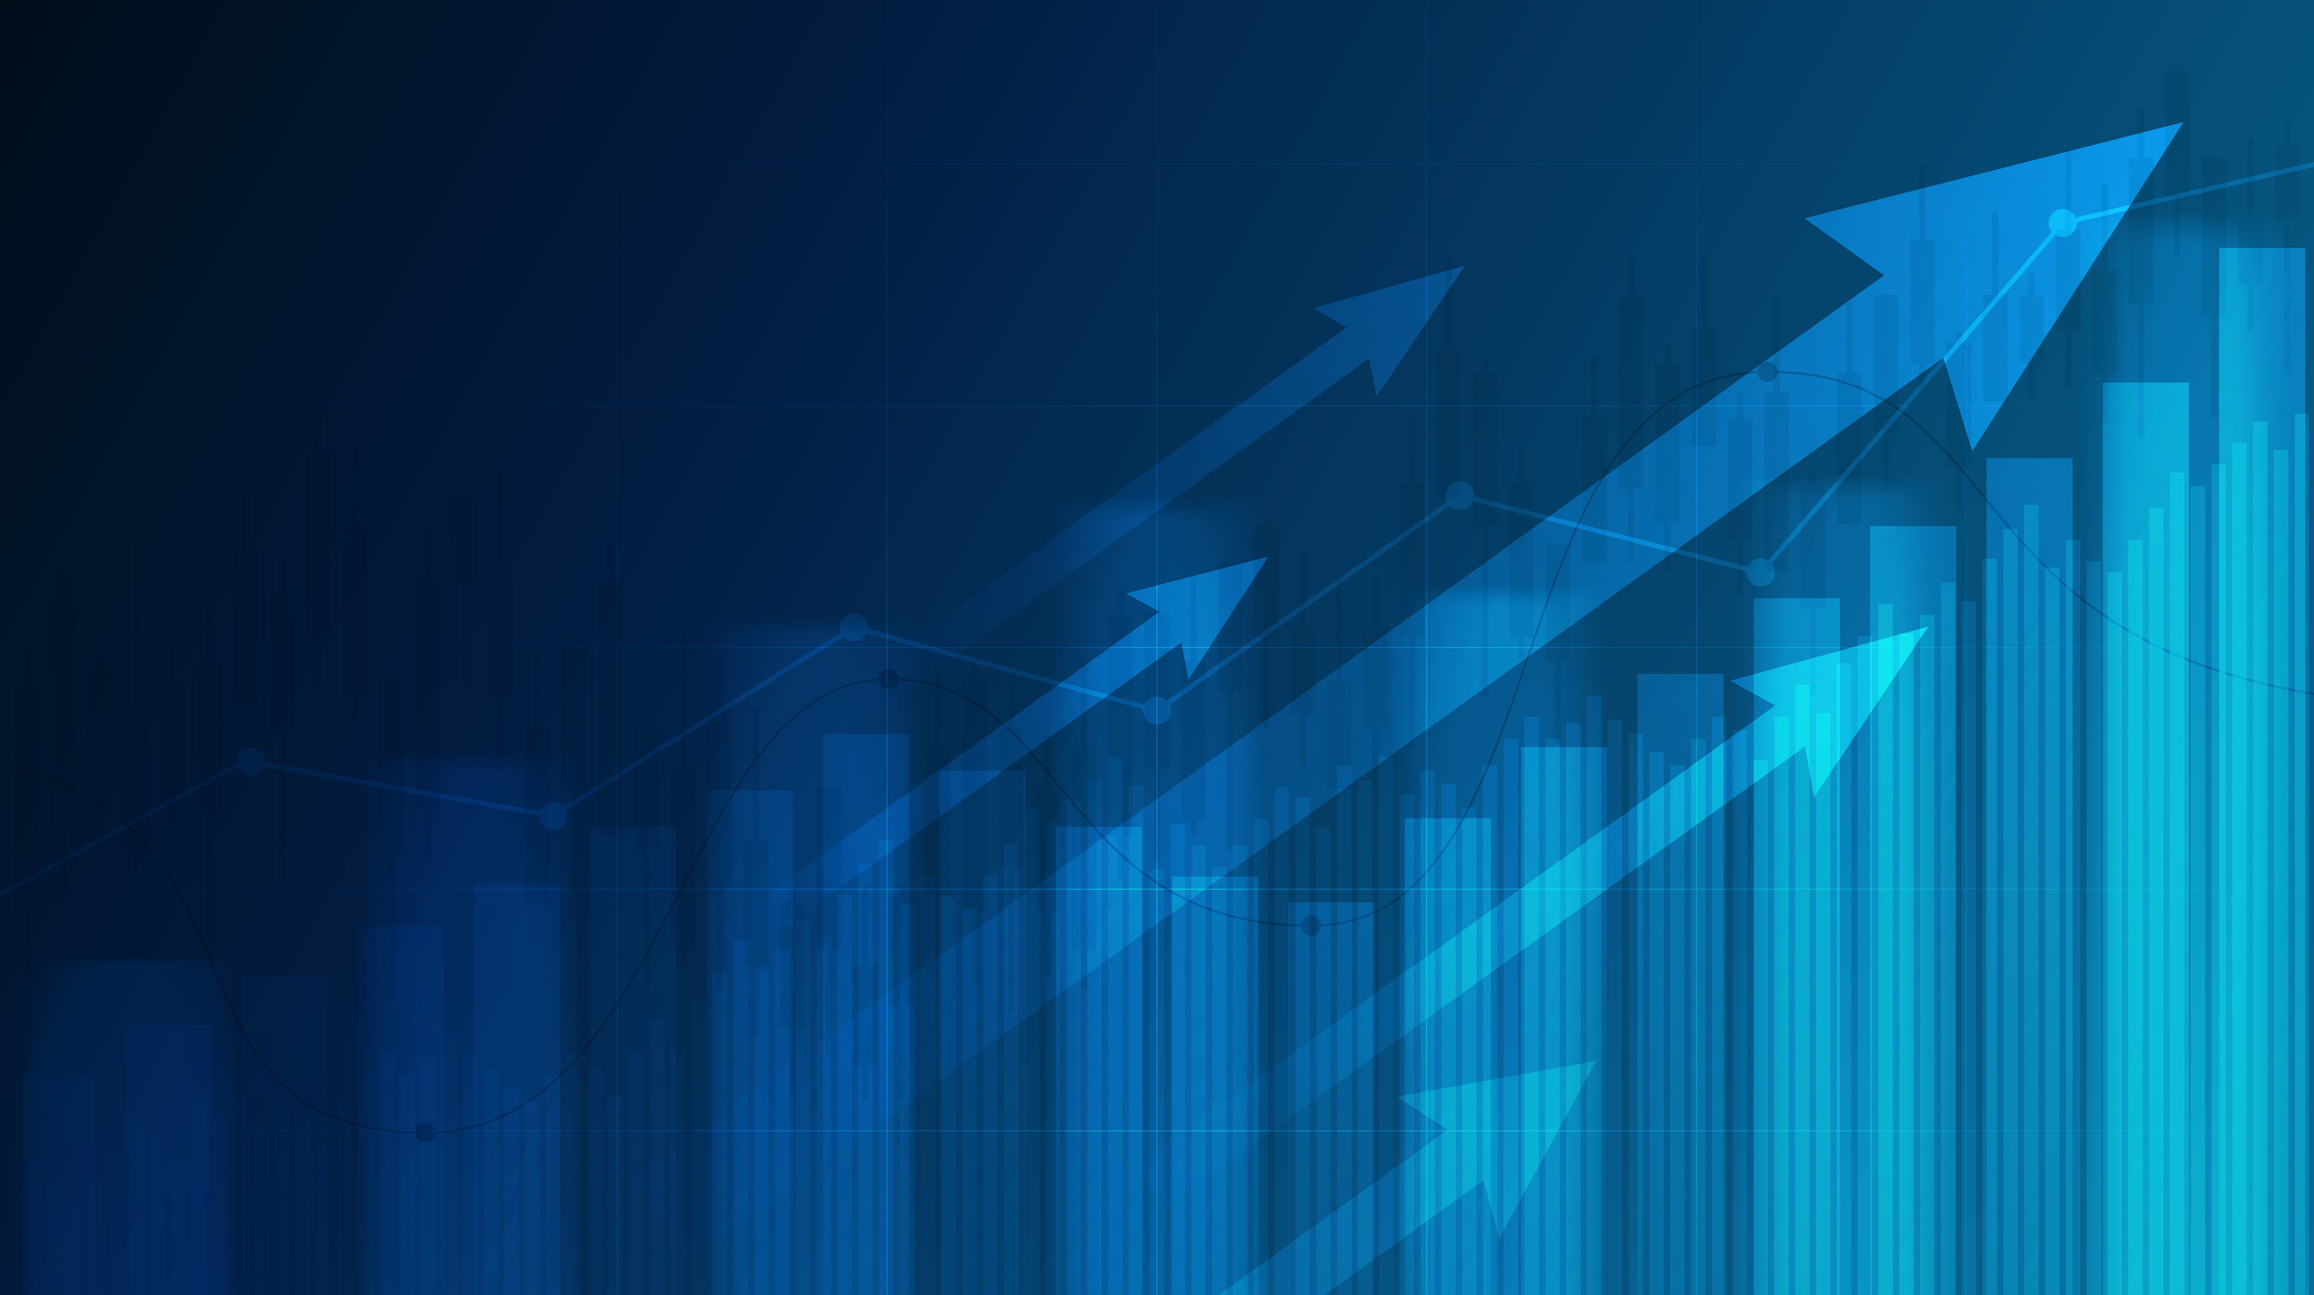 Abstract financial graph with uptrend line and arrows in stock market on blue colour background